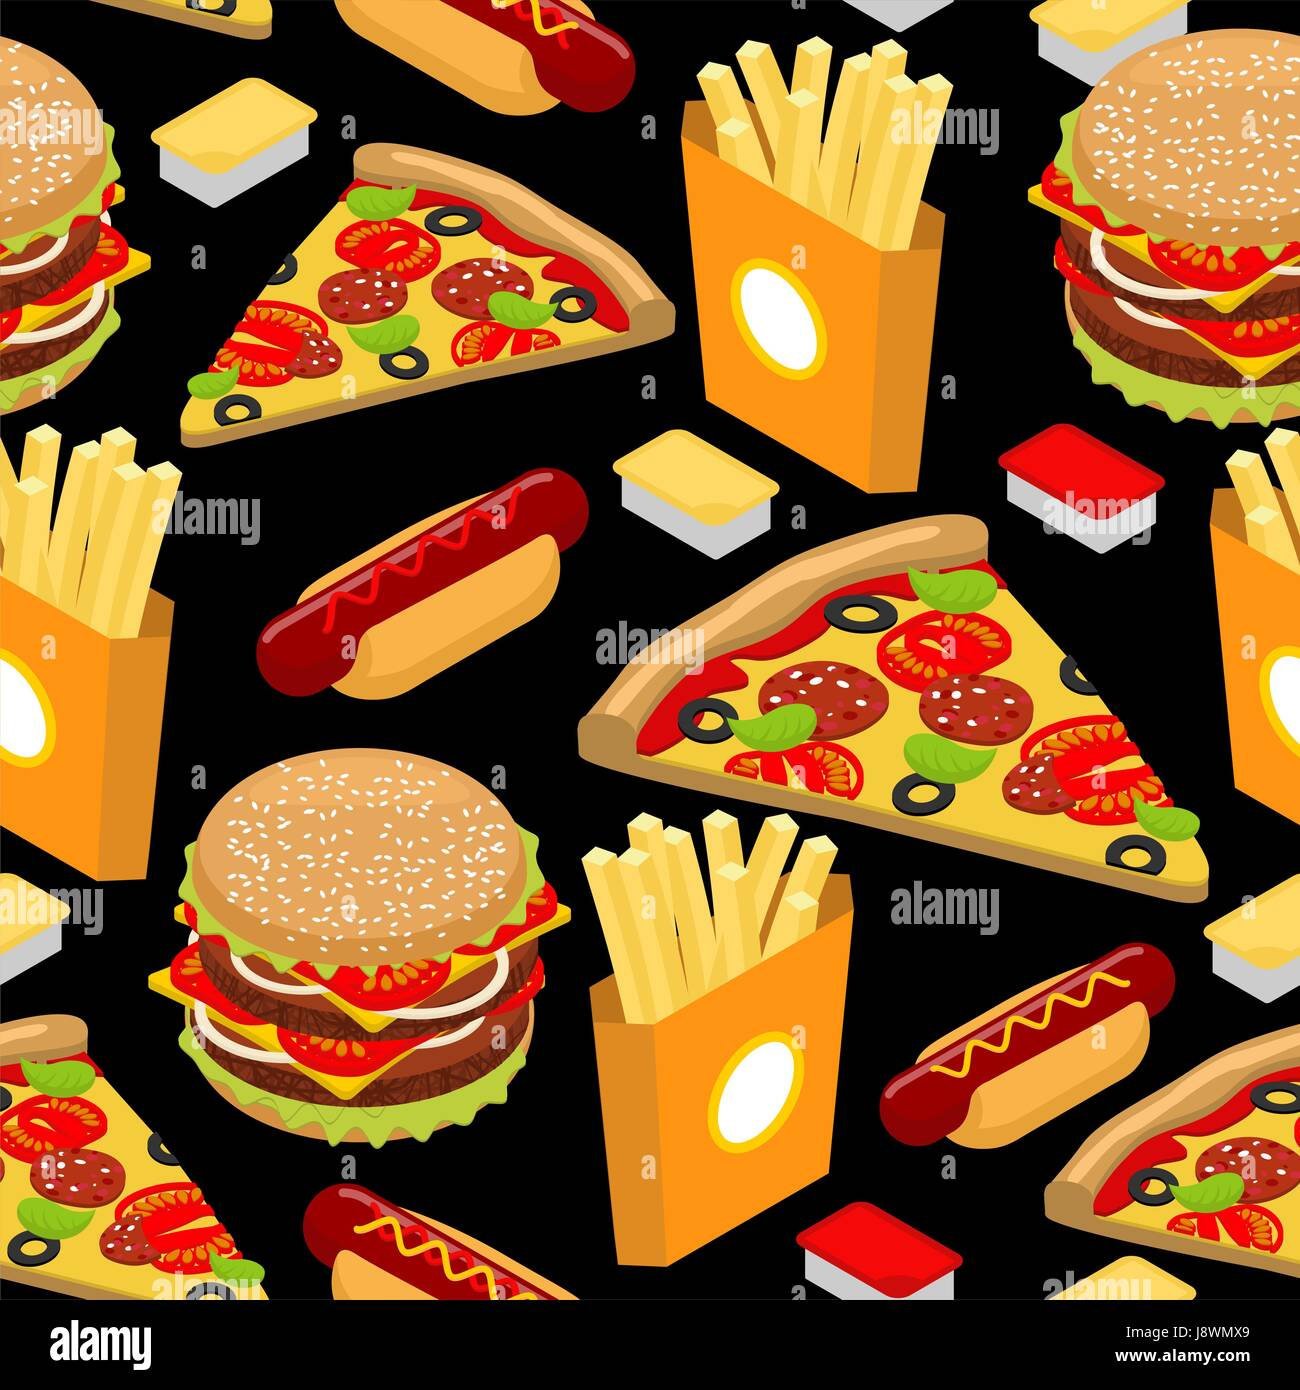 Fast Food Pattern Hamburger And French Fries On Black Background Stock Vector Image Art Alamy